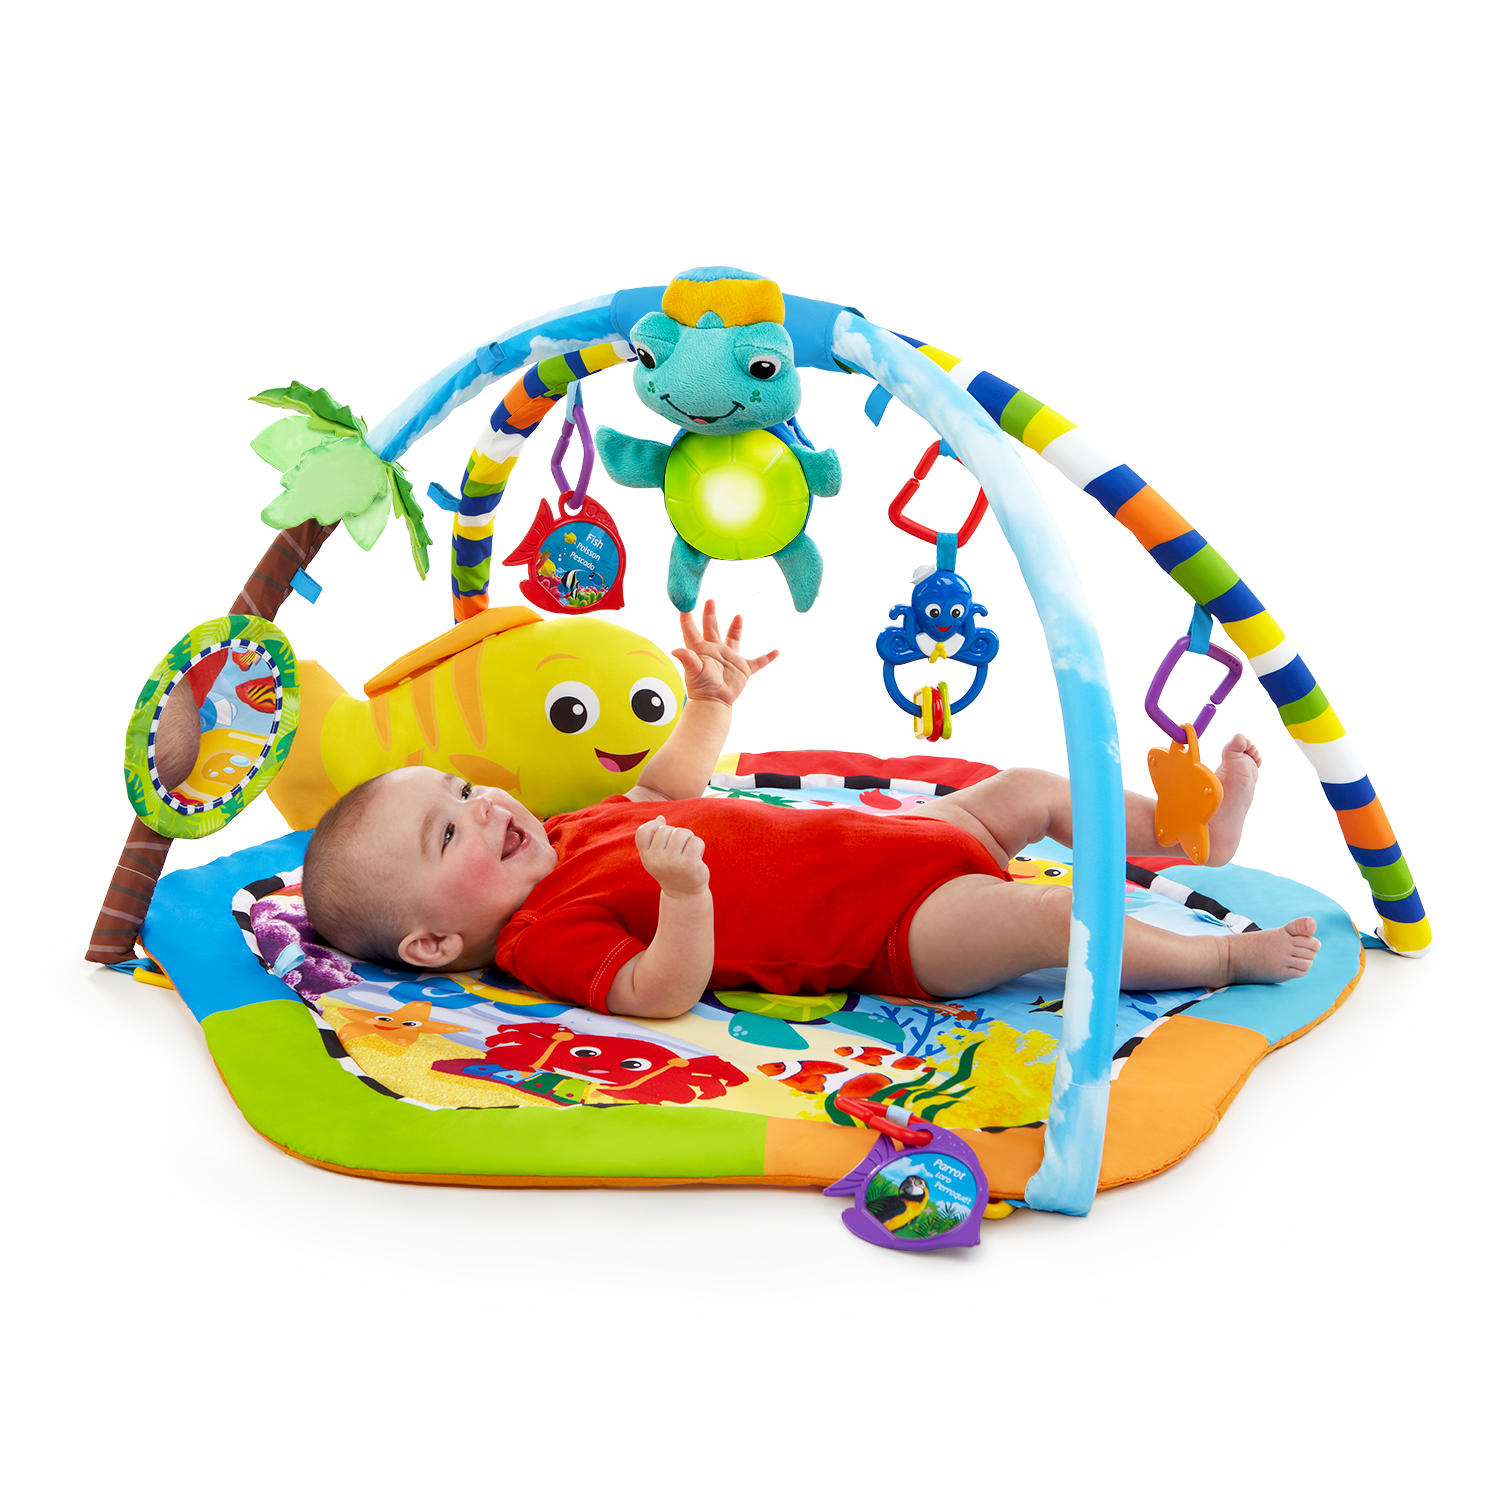 Rhythm of the Reef Play Gym™